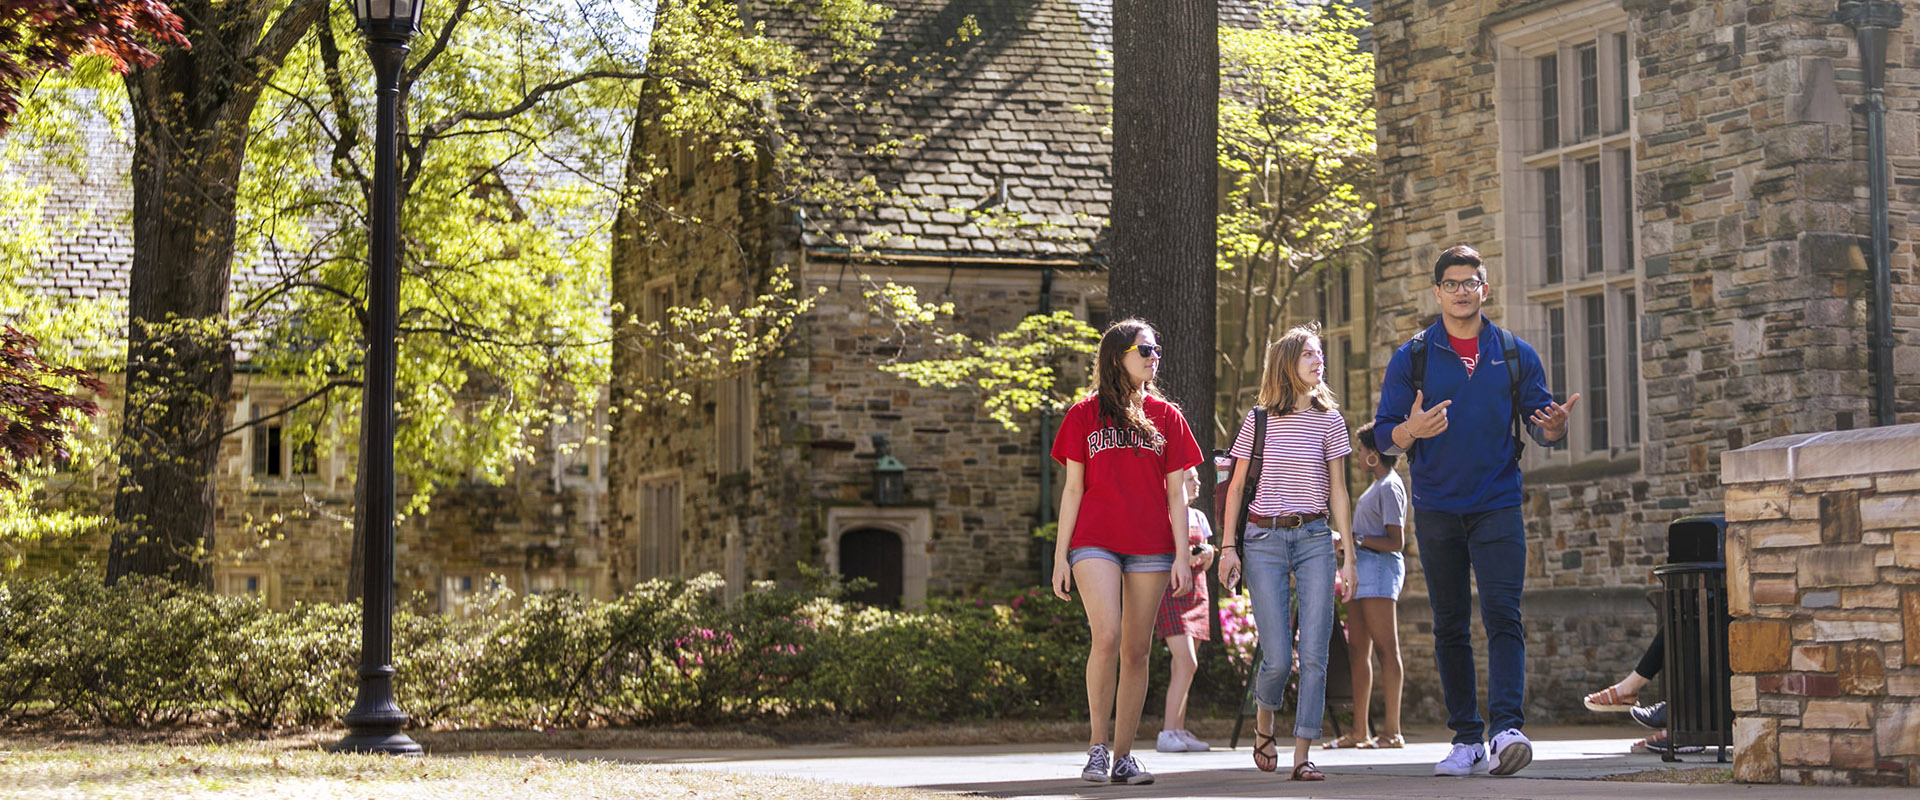 Three students walk by a fieldstone building with trees